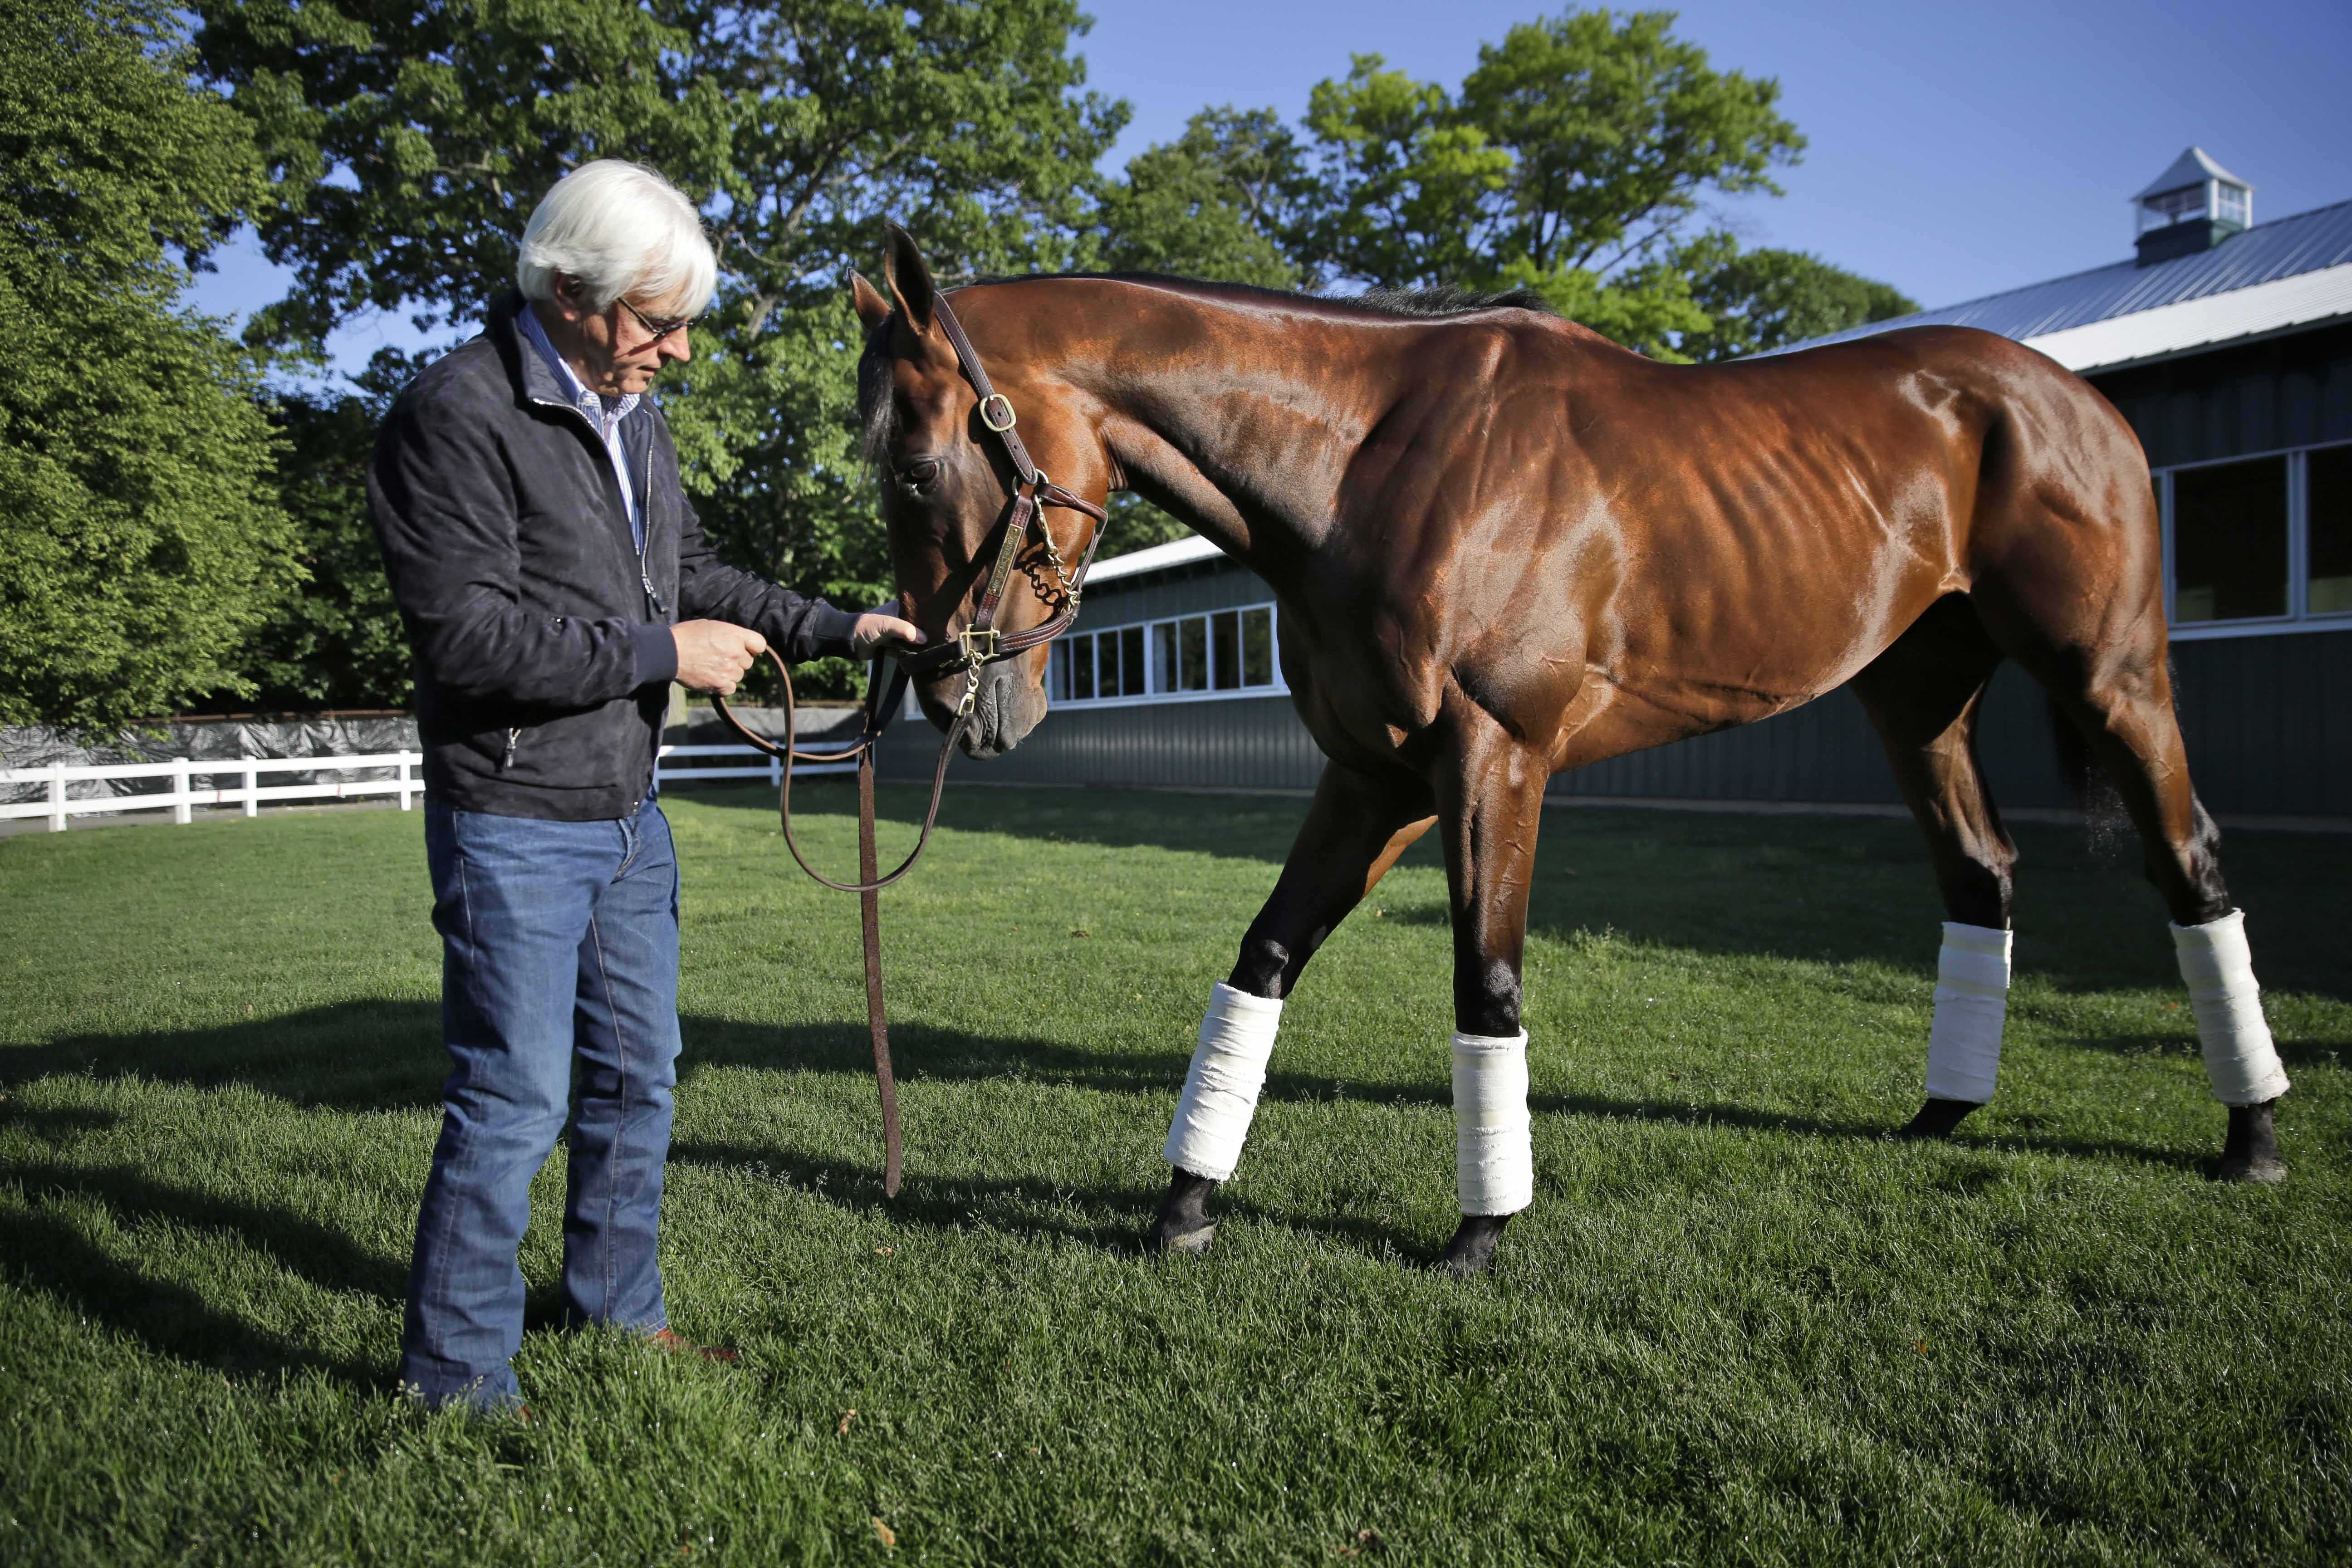 Trainer Bob Baffert shows Triple Crown winner American Pharoah to members of the media at Belmont Park in Elmont, N.Y., Sunday, June 7, 2015. American Pharoah won the Belmont Stakes to become the first horse to win the Triple Crown in 37 years. (AP Photo/